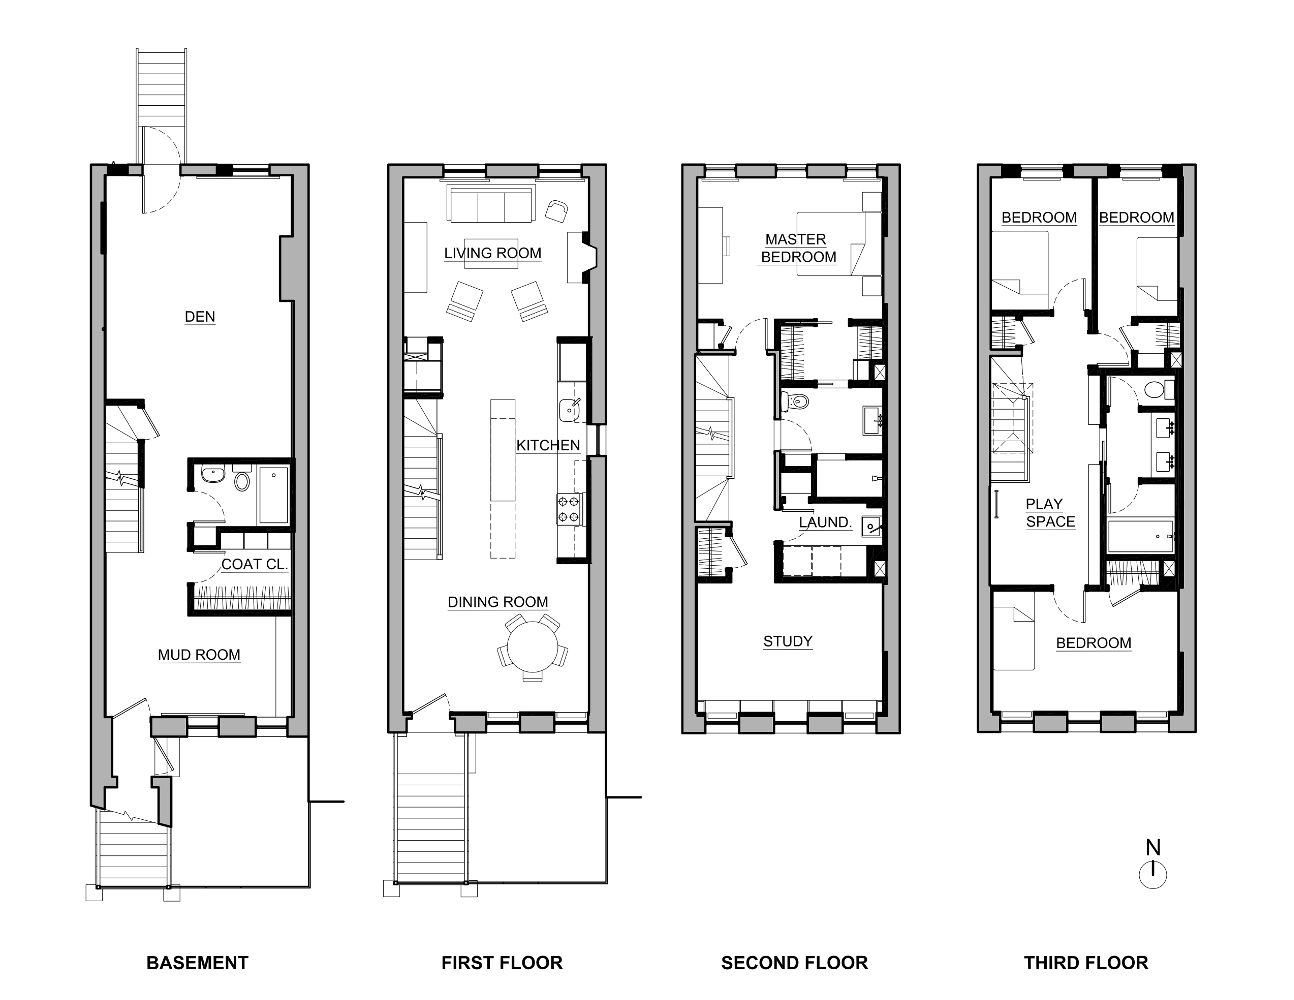 Delson or sherman architects pca brownstone of elegant for Brownstone plans